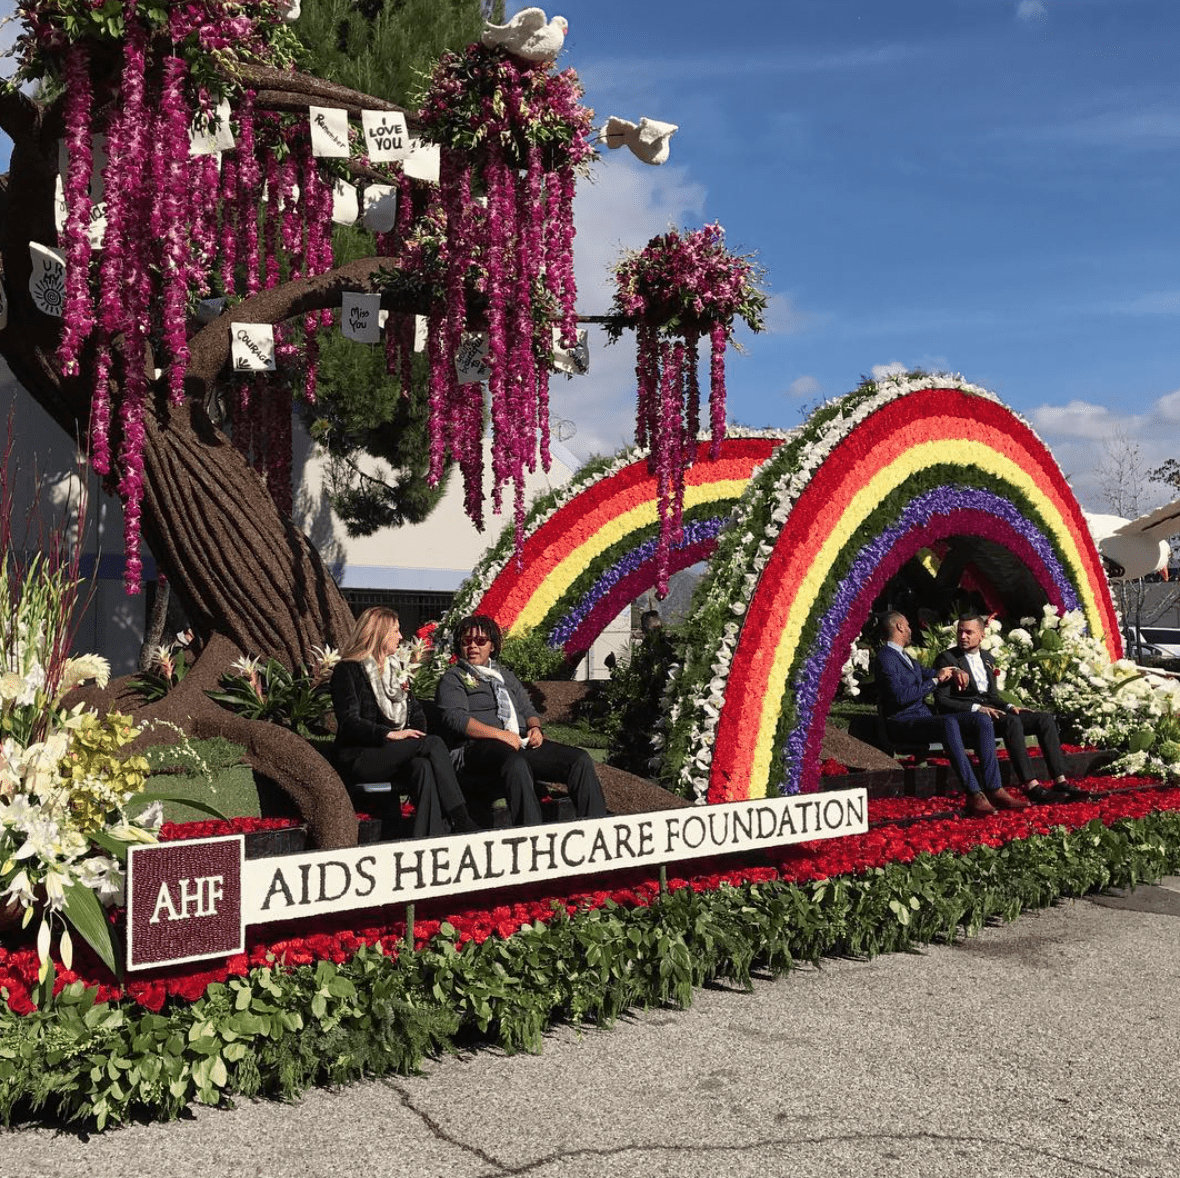 49 doves, commemorating Pulse victims, released at Rose Parade